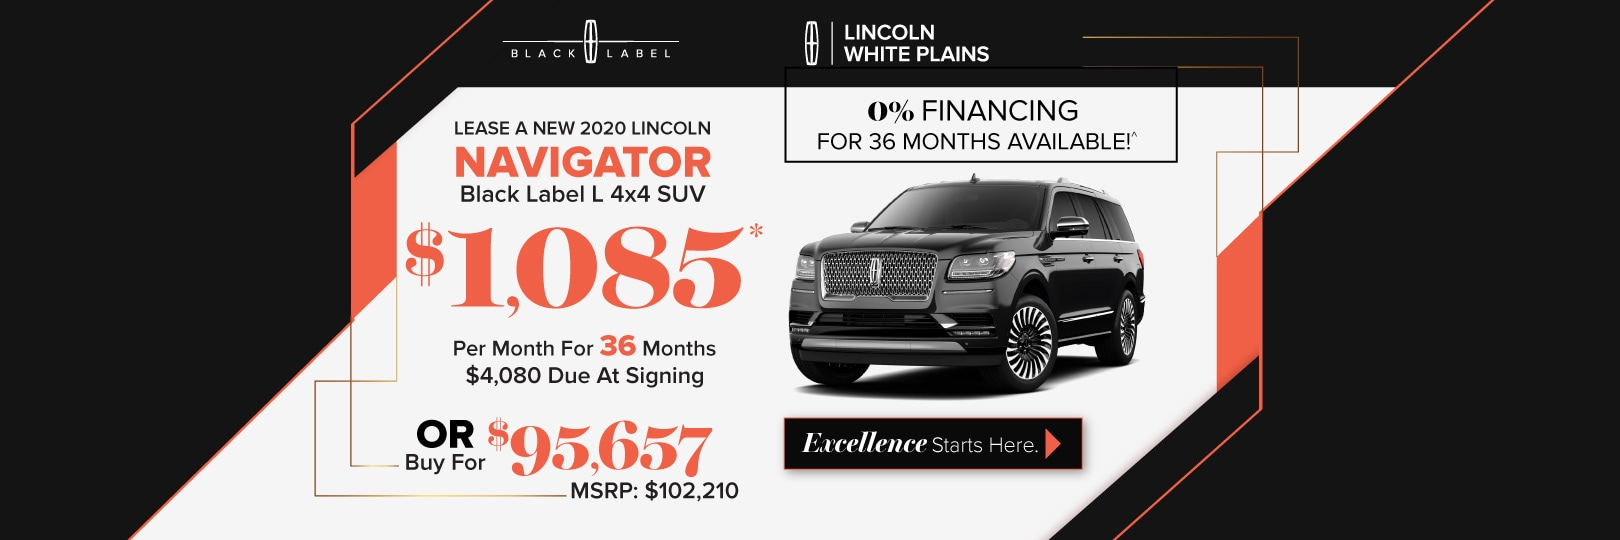 Lincoln Navigator lease deal image